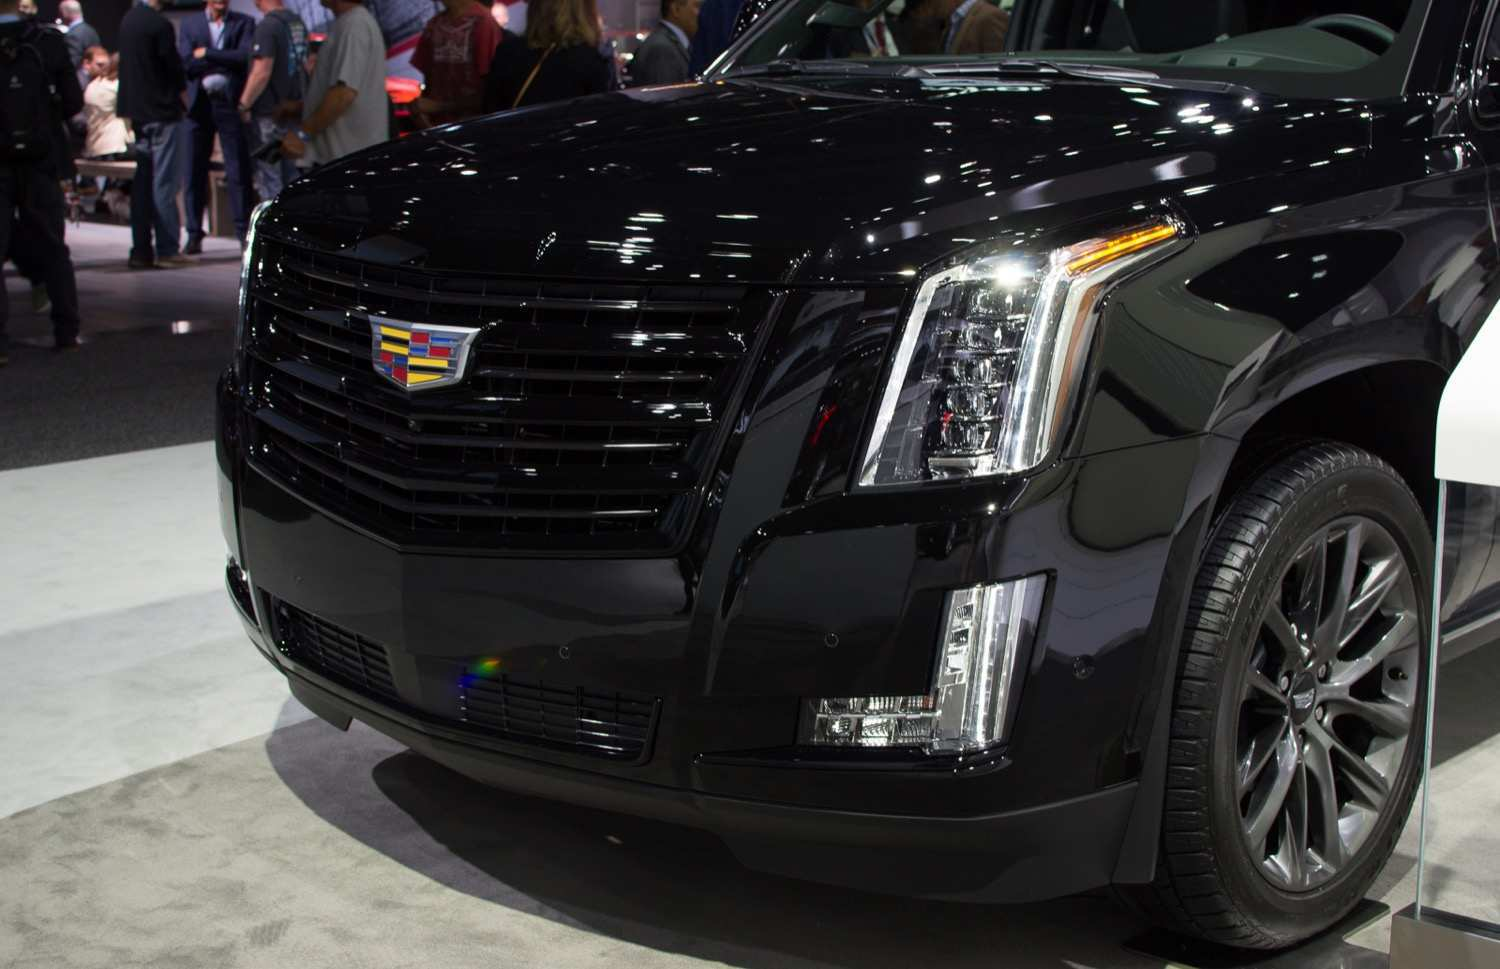 73 New 2019 Cadillac Escalade Vsport Concept